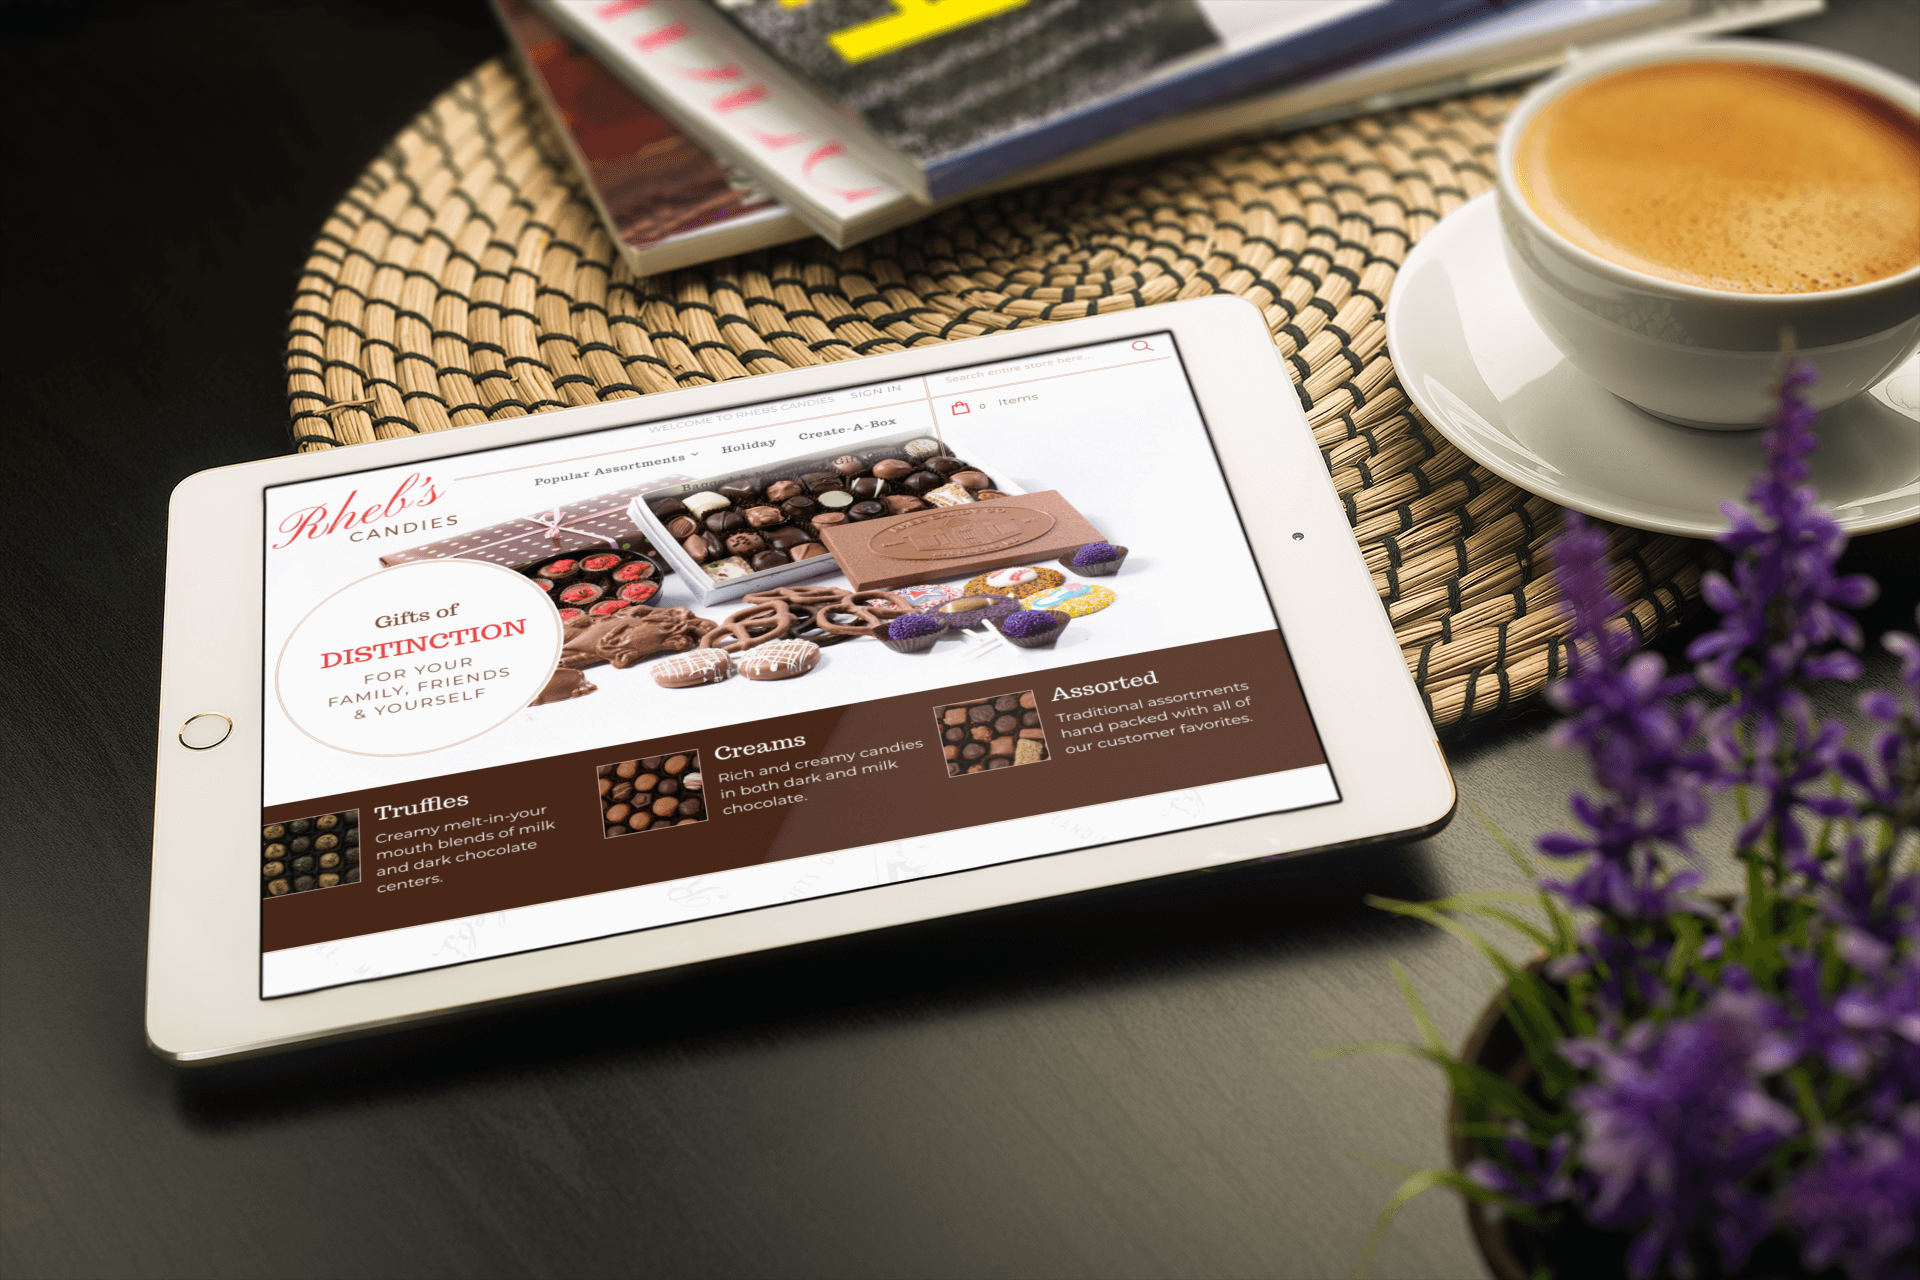 rhebs-website-mockup-ipad